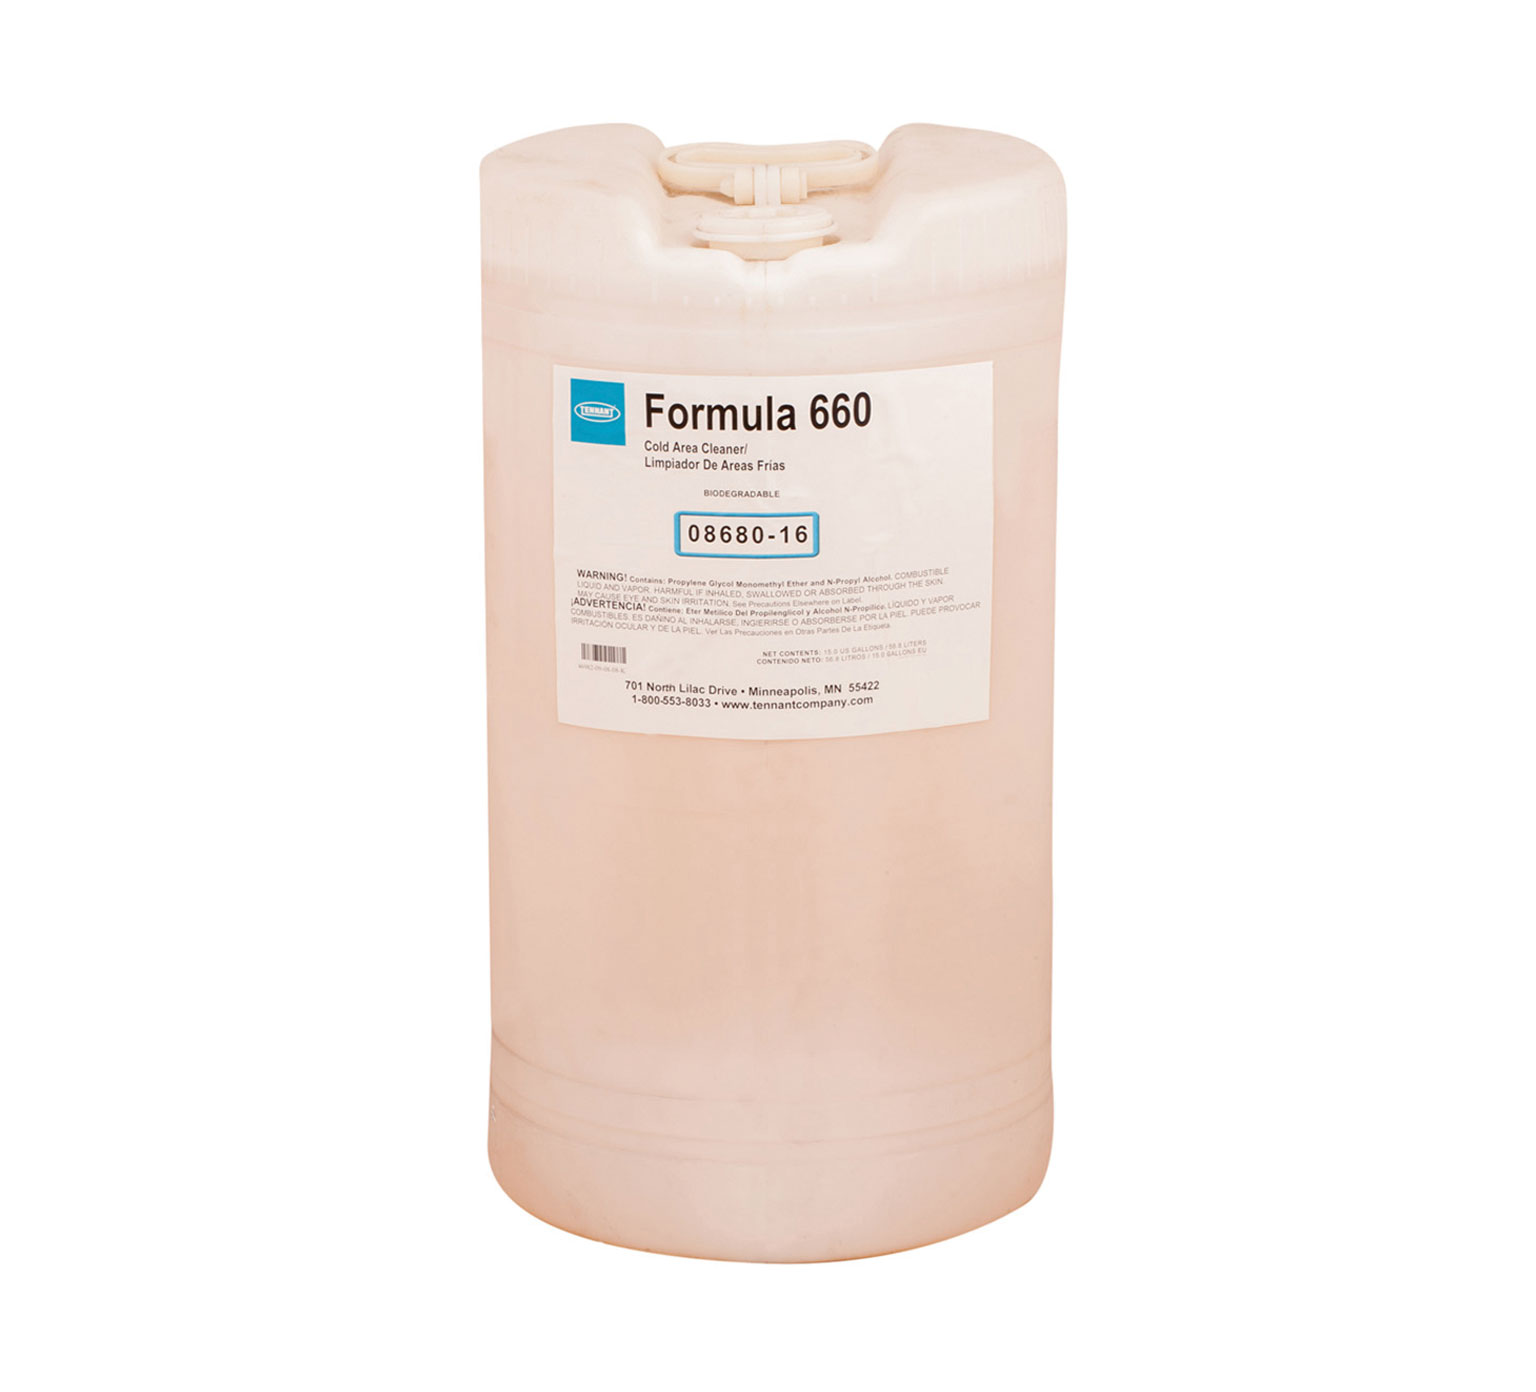 08680-16 Cold Area Cleaner – 15 gallon alt 1